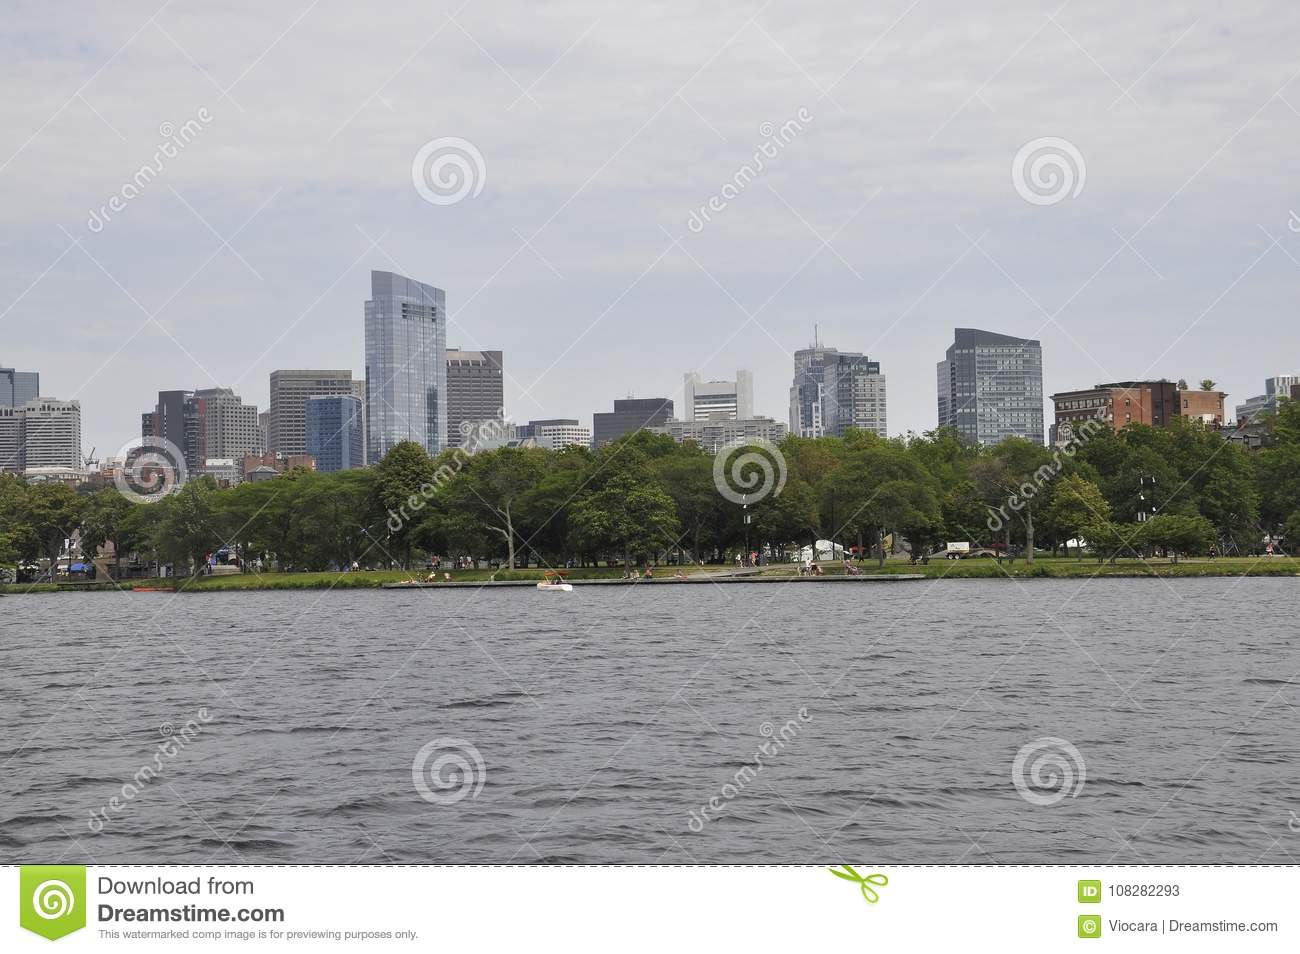 Boston Skyline view from Charles river in Boston Massachusettes State of USA